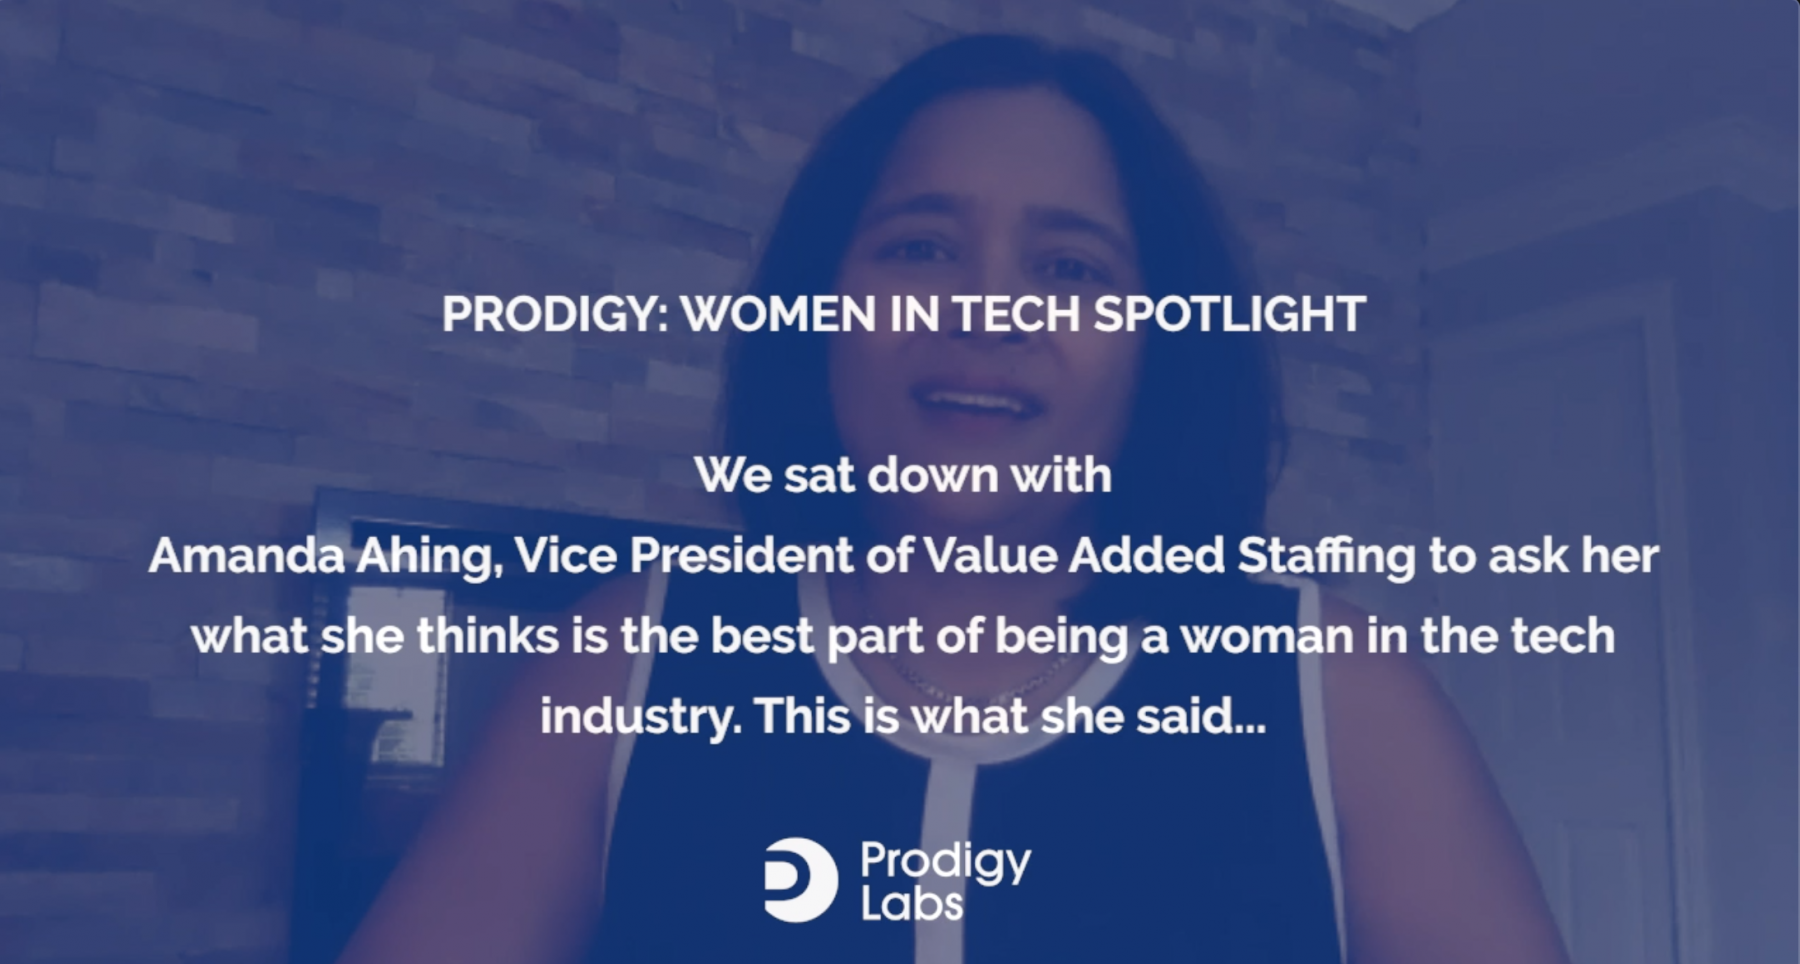 Video Thumbnail for Prodigy's Women in Tech Spotlight Video featuring Amanda Ahing, VP of Workforce Solutions